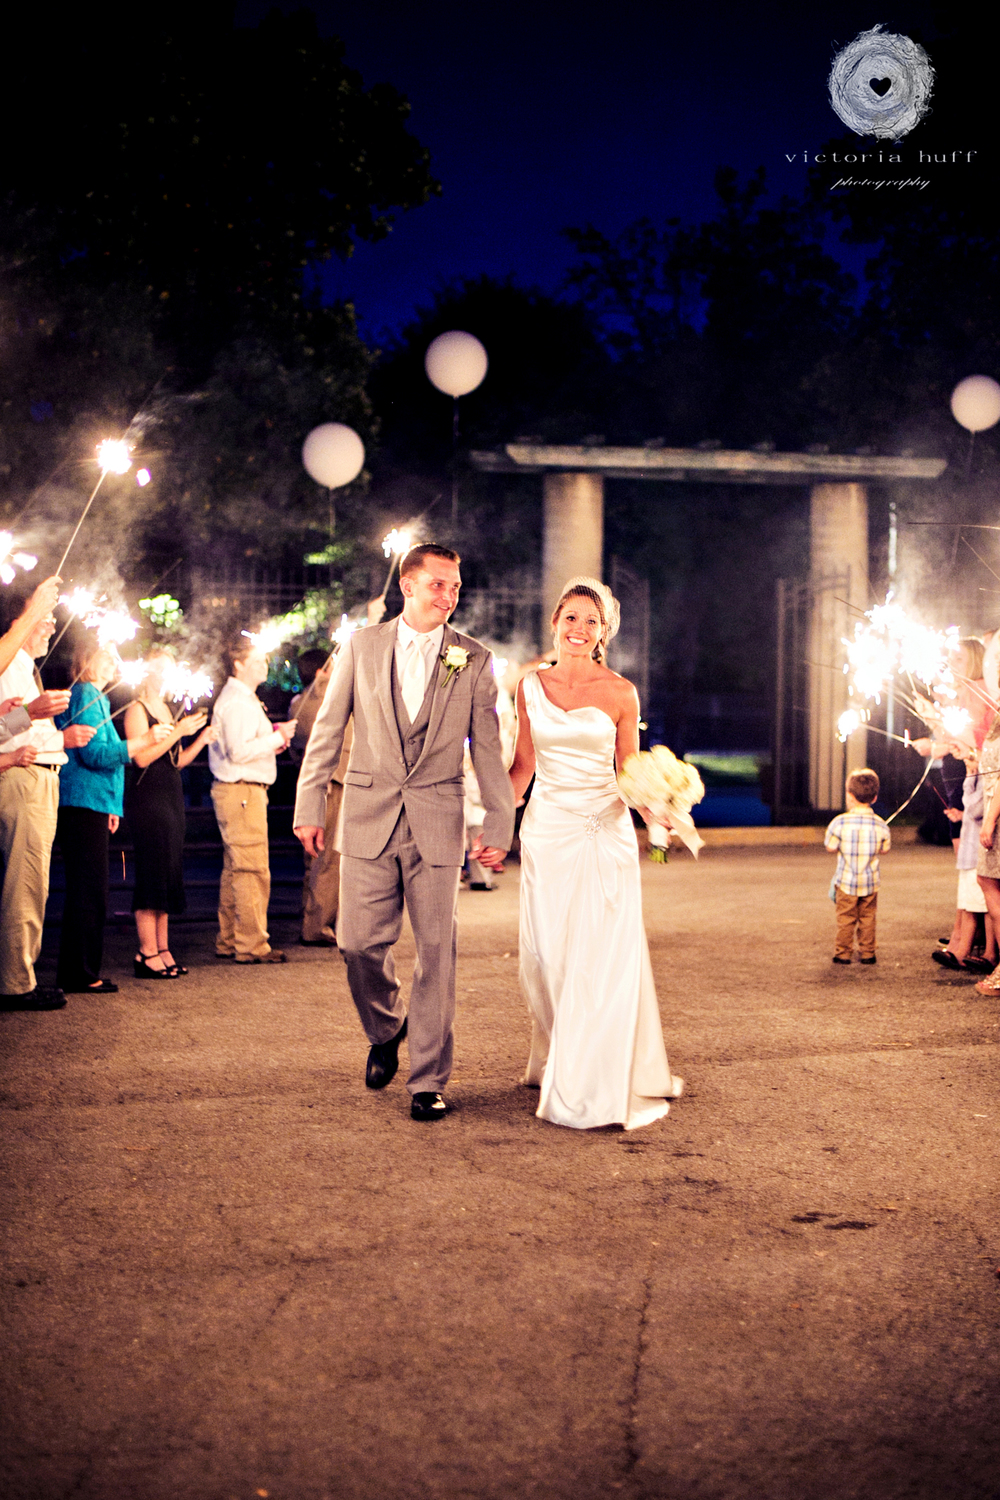 Wedding-Photography-Meagan-Kerske-Reynolds-Nashville-Tennessee-Centennial-Park-Gardens-of-Babylon-Wedding-sparklers.jpg